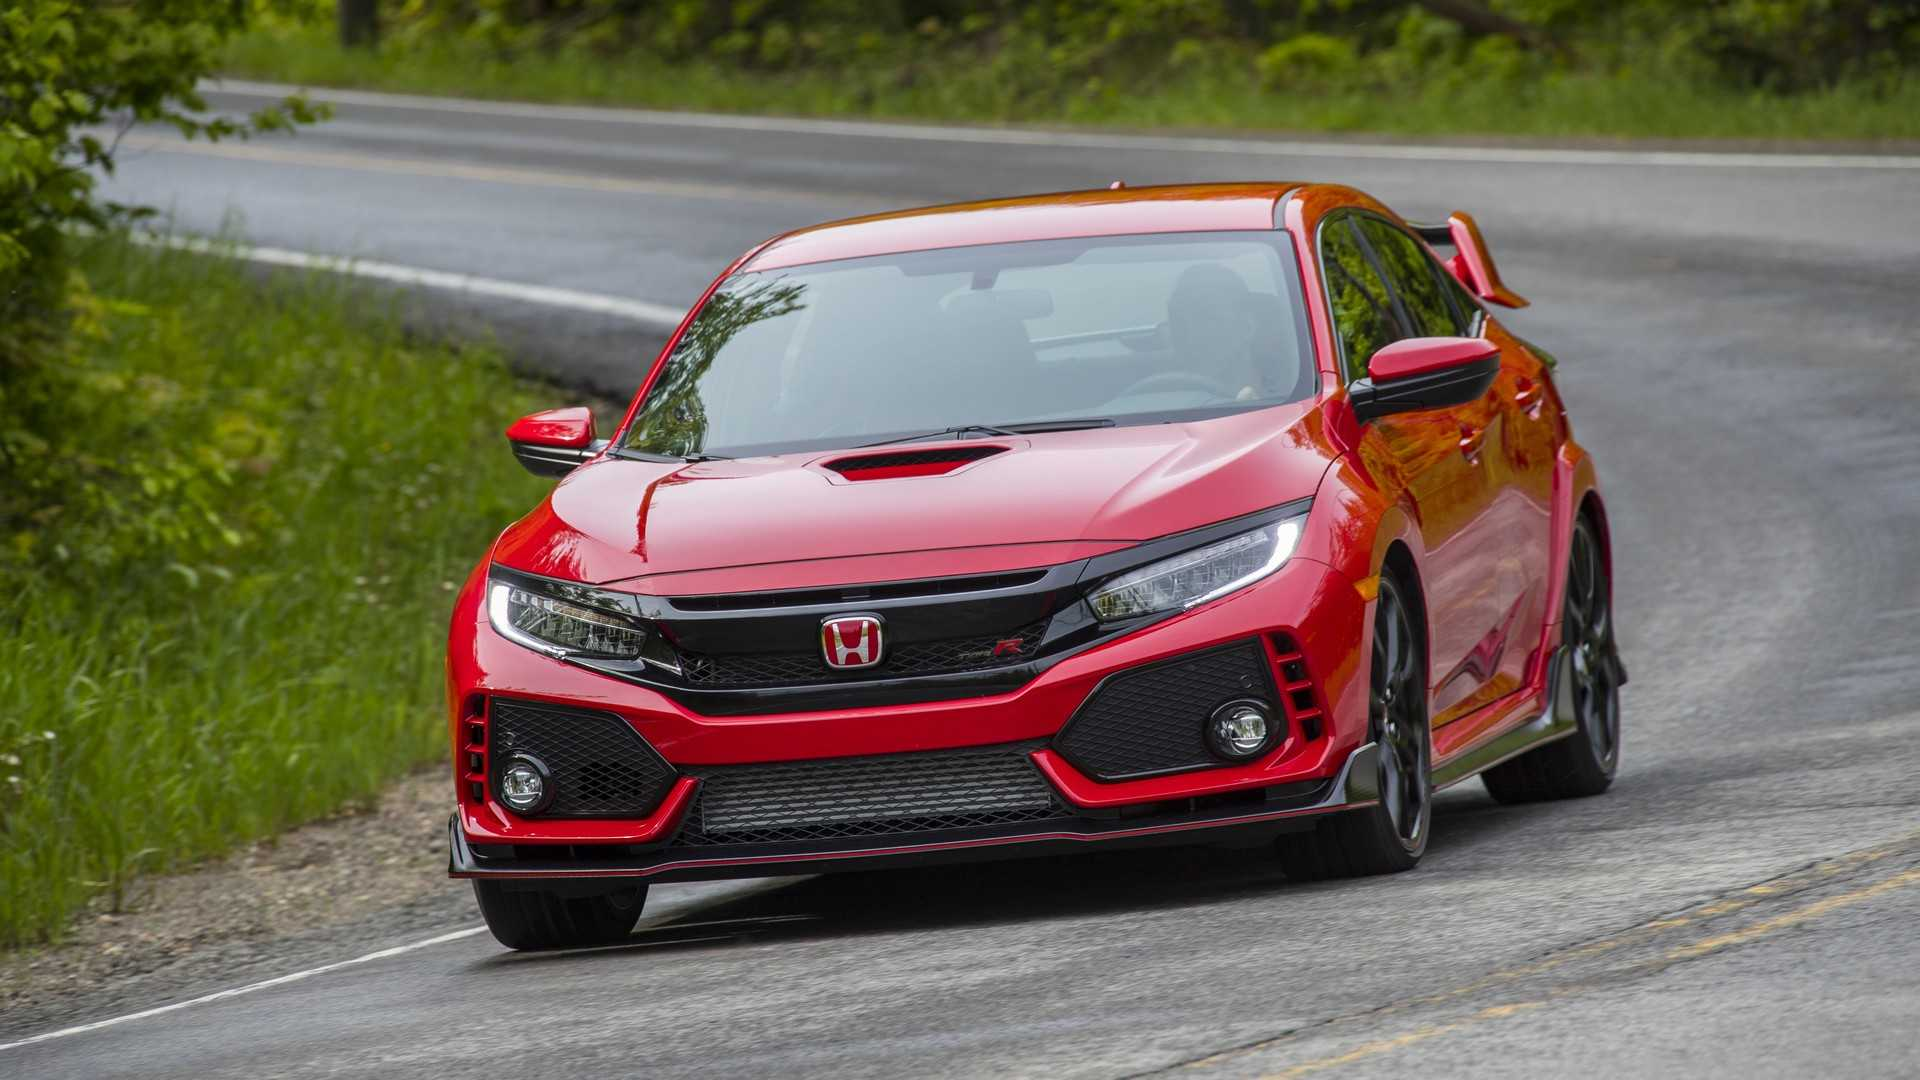 65 Concept of 2019 Honda Type R New Review with 2019 Honda Type R